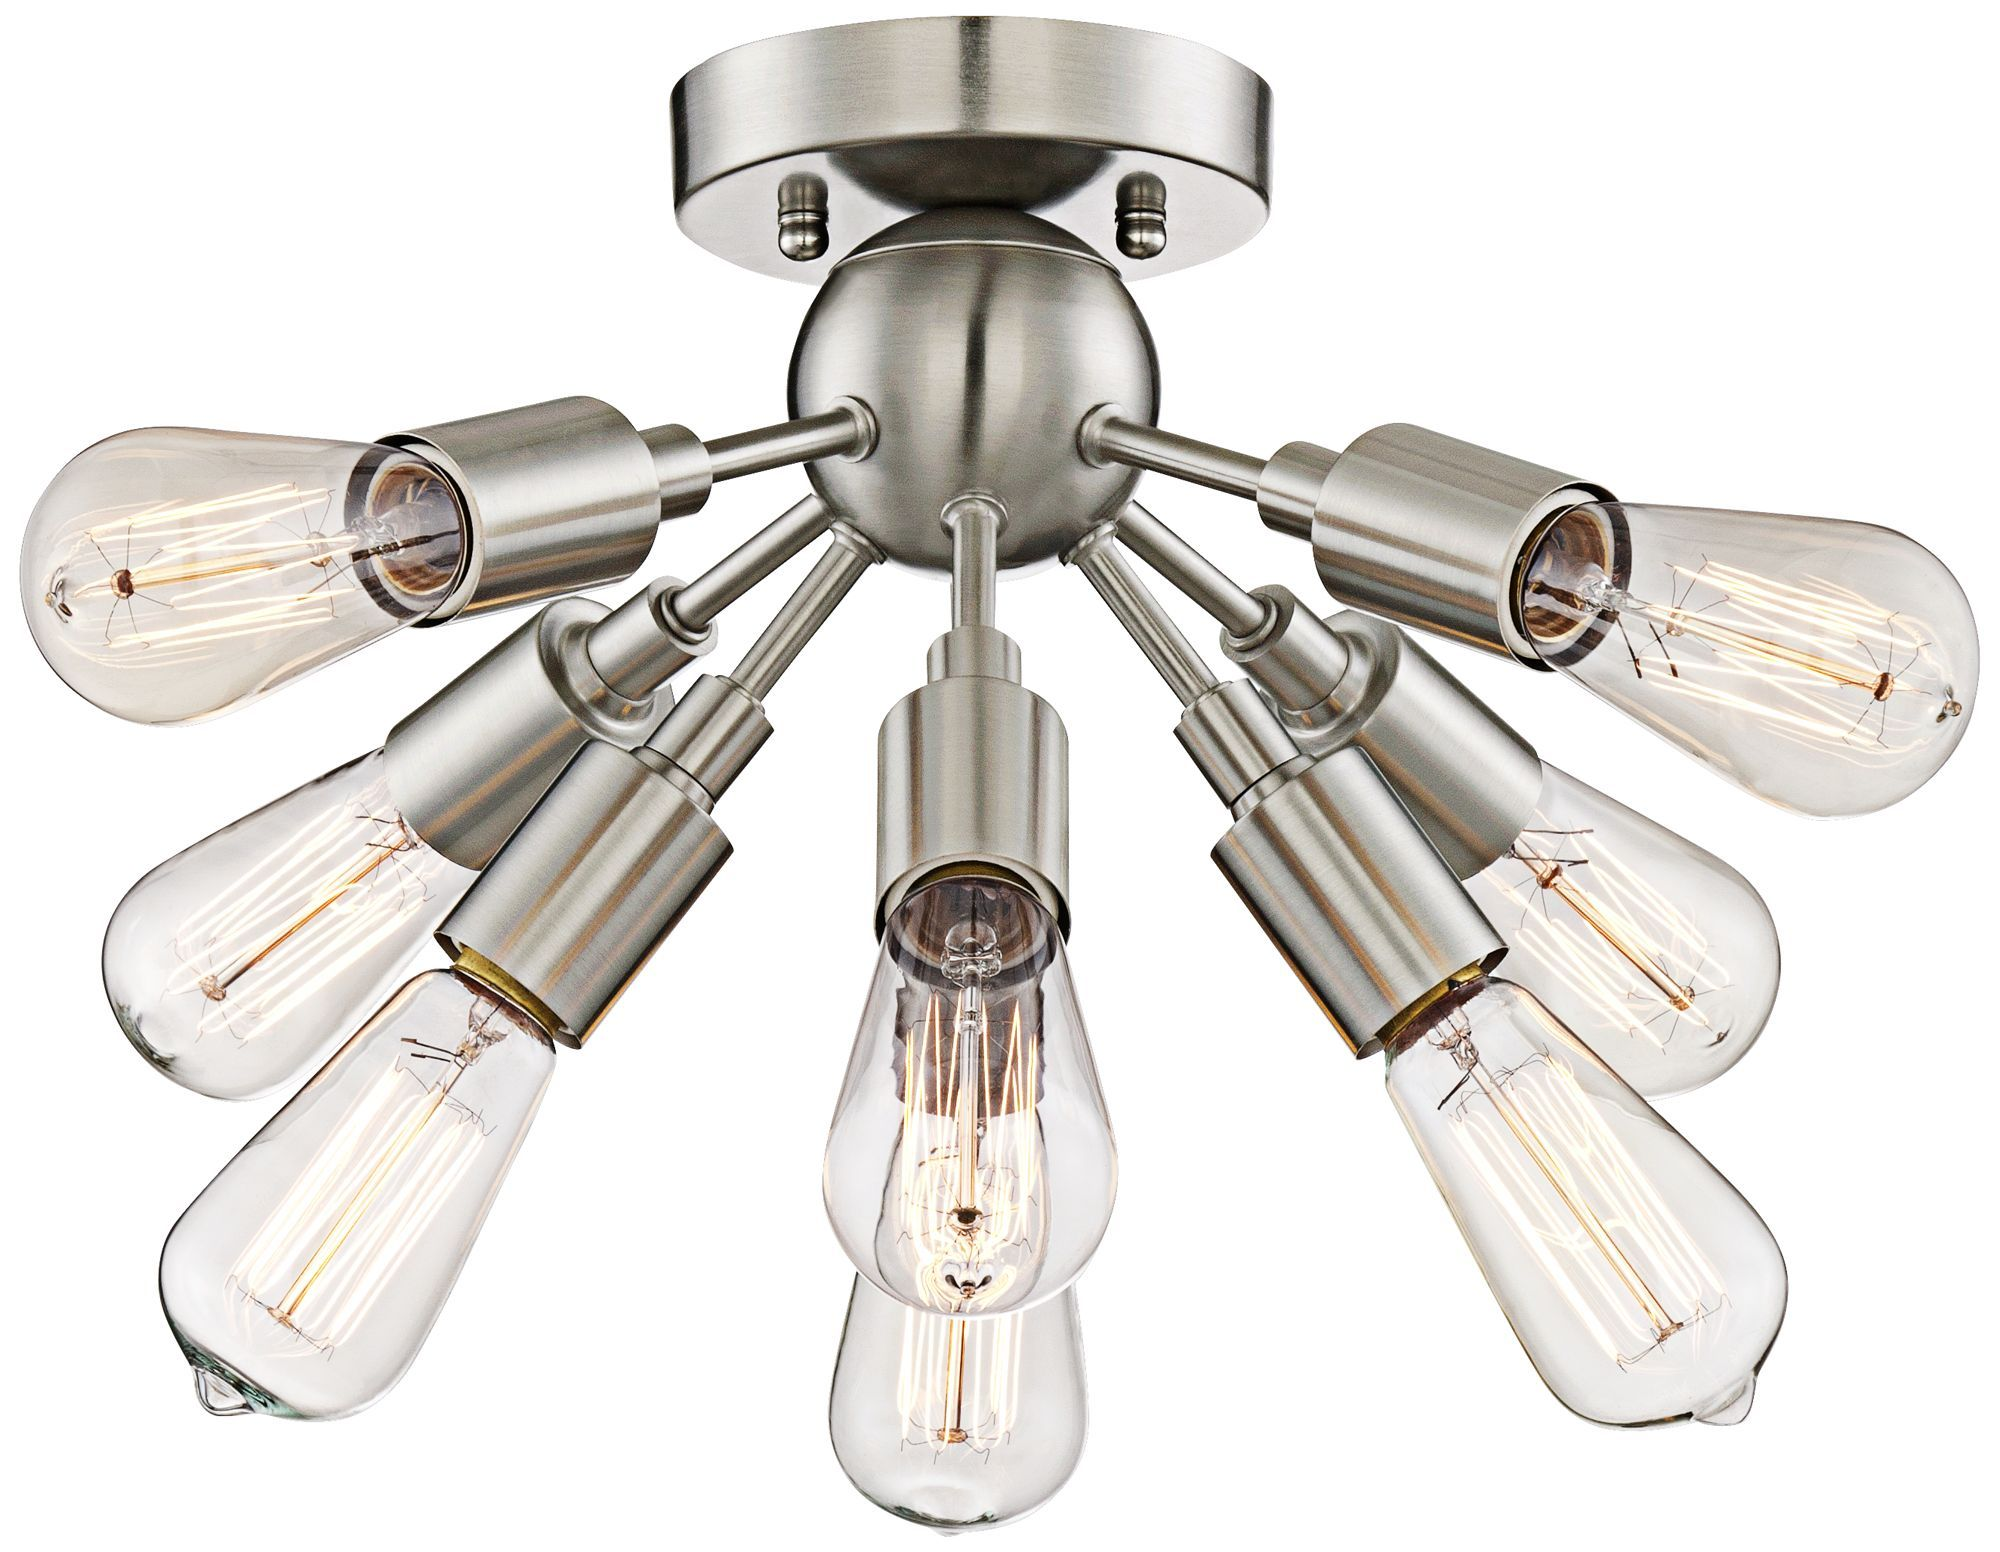 Quorum electra 8 light sputnik chandelier amp reviews wayfair - Hemingson 8 Light Satin Nickel Ceiling Light 20 3